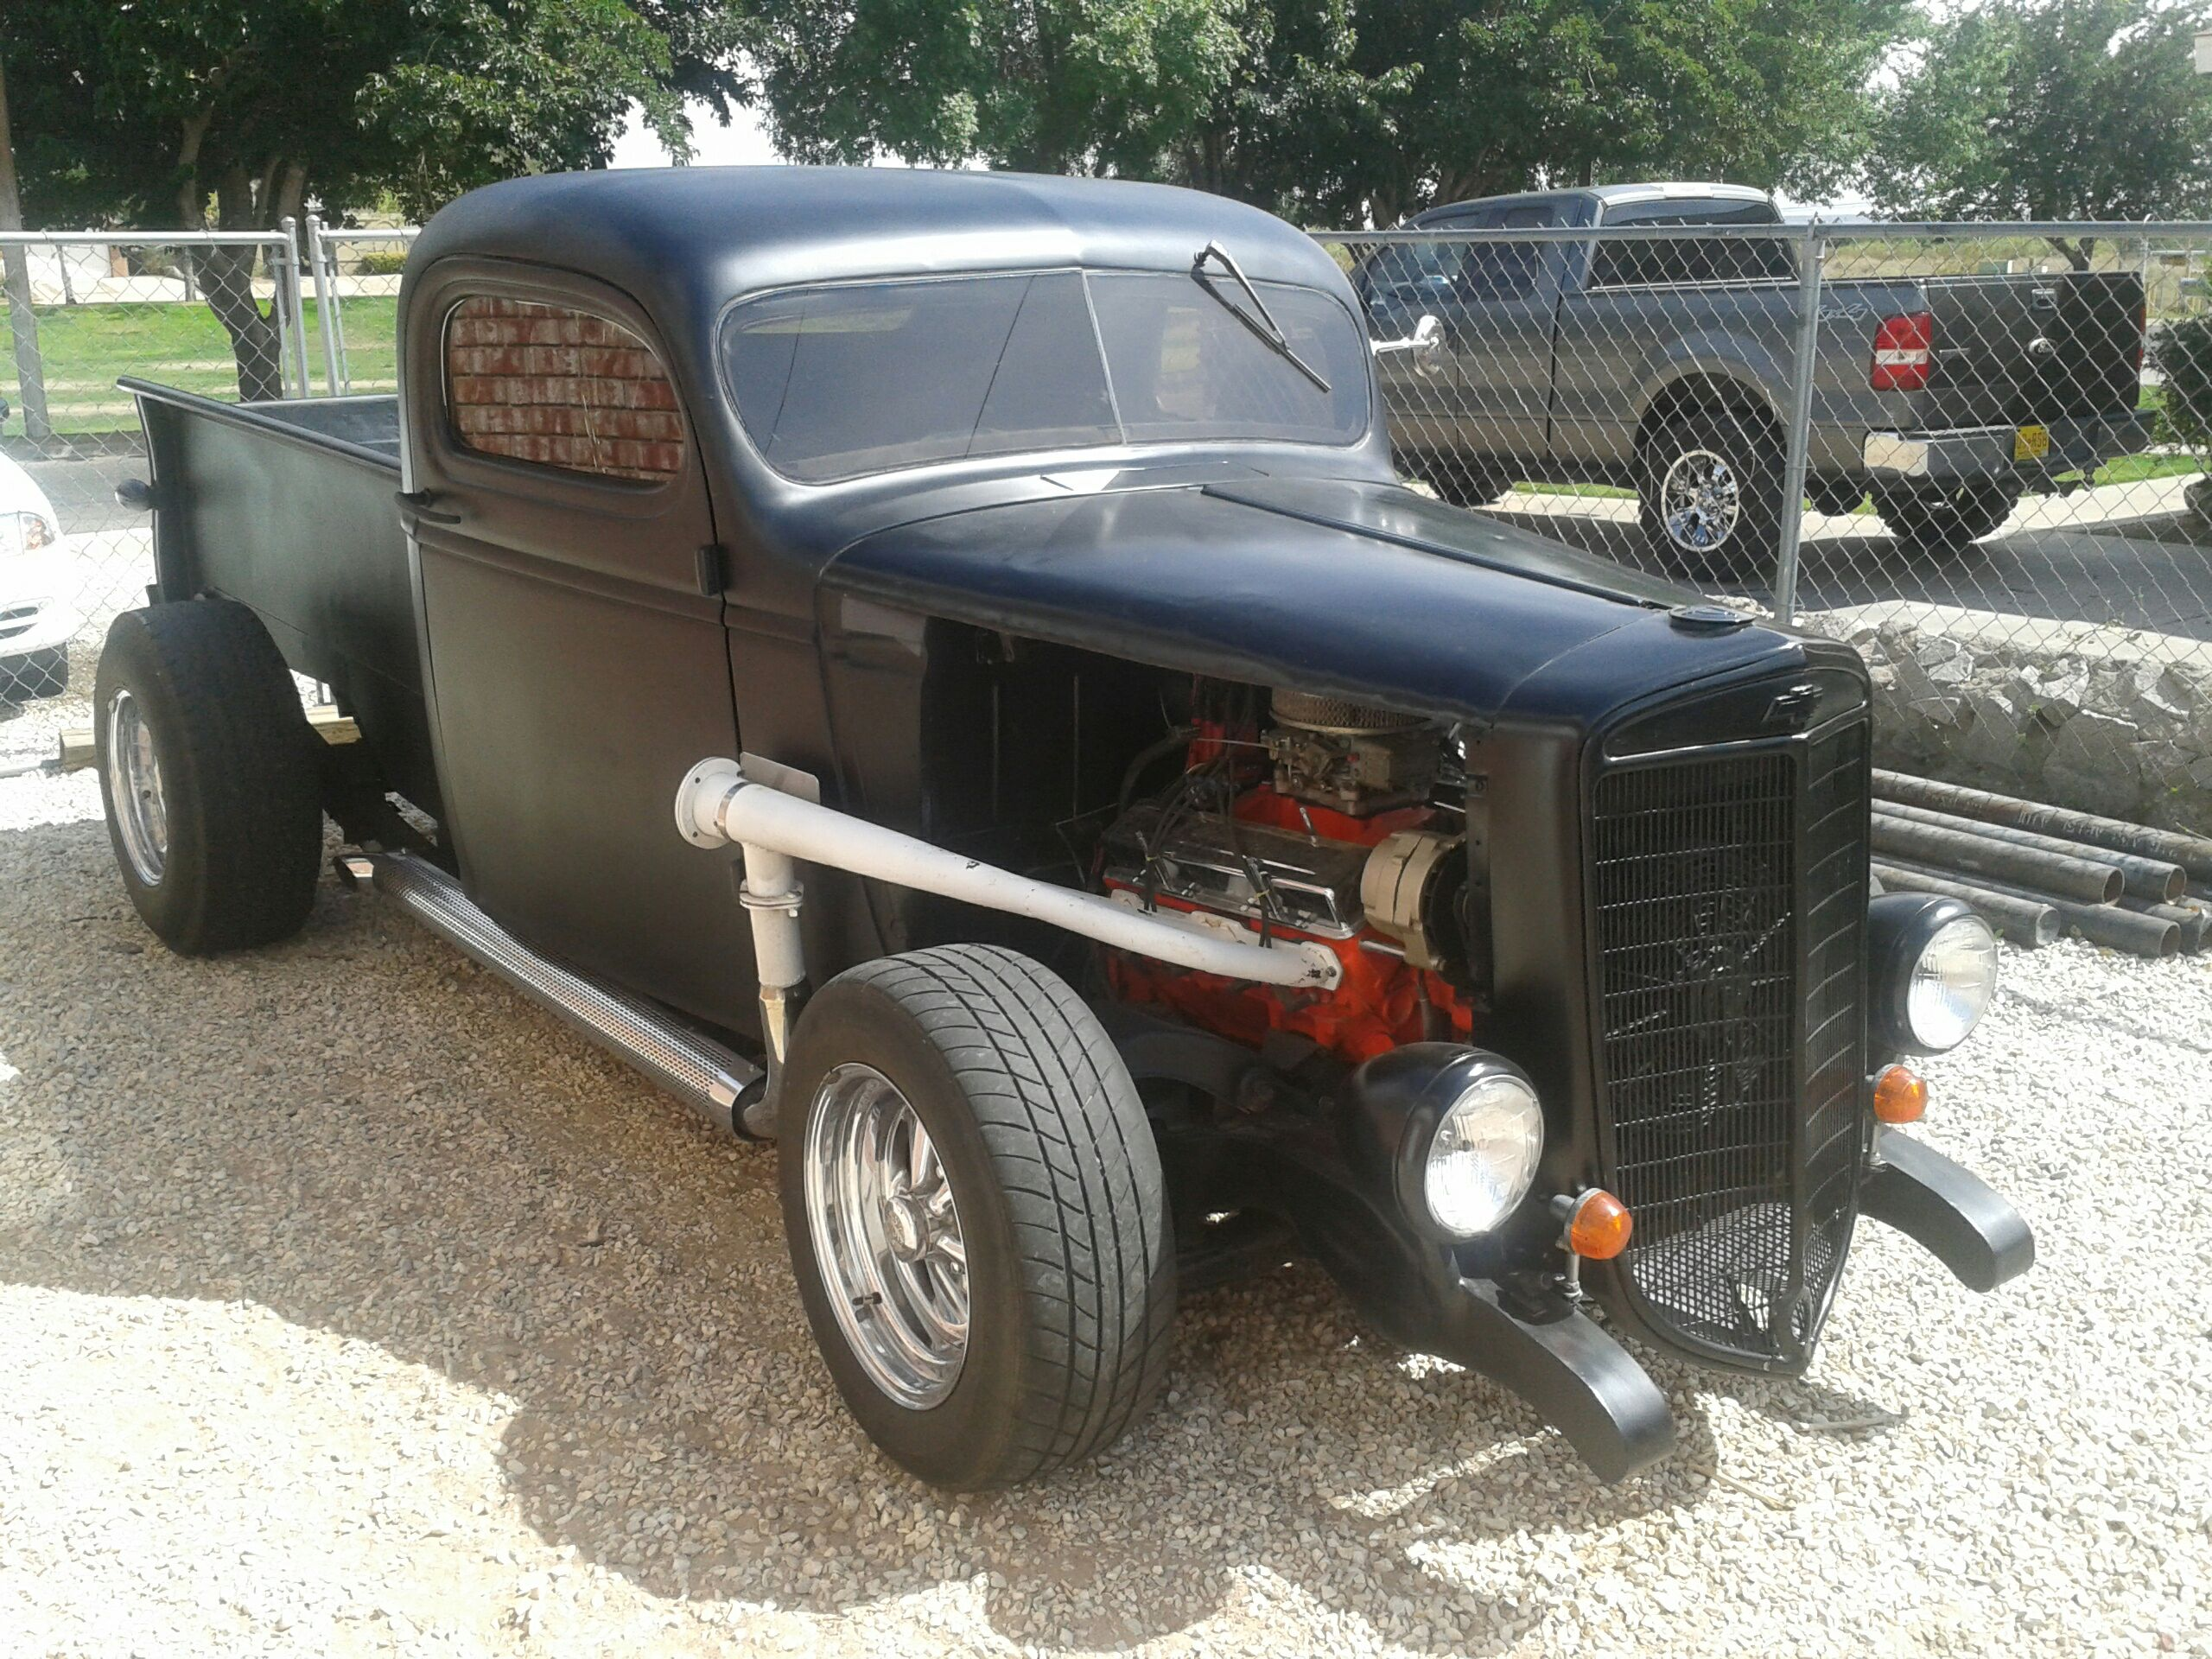 Click image for larger version  Name:39 chevy.jpg Views:134 Size:873.4 KB ID:111105